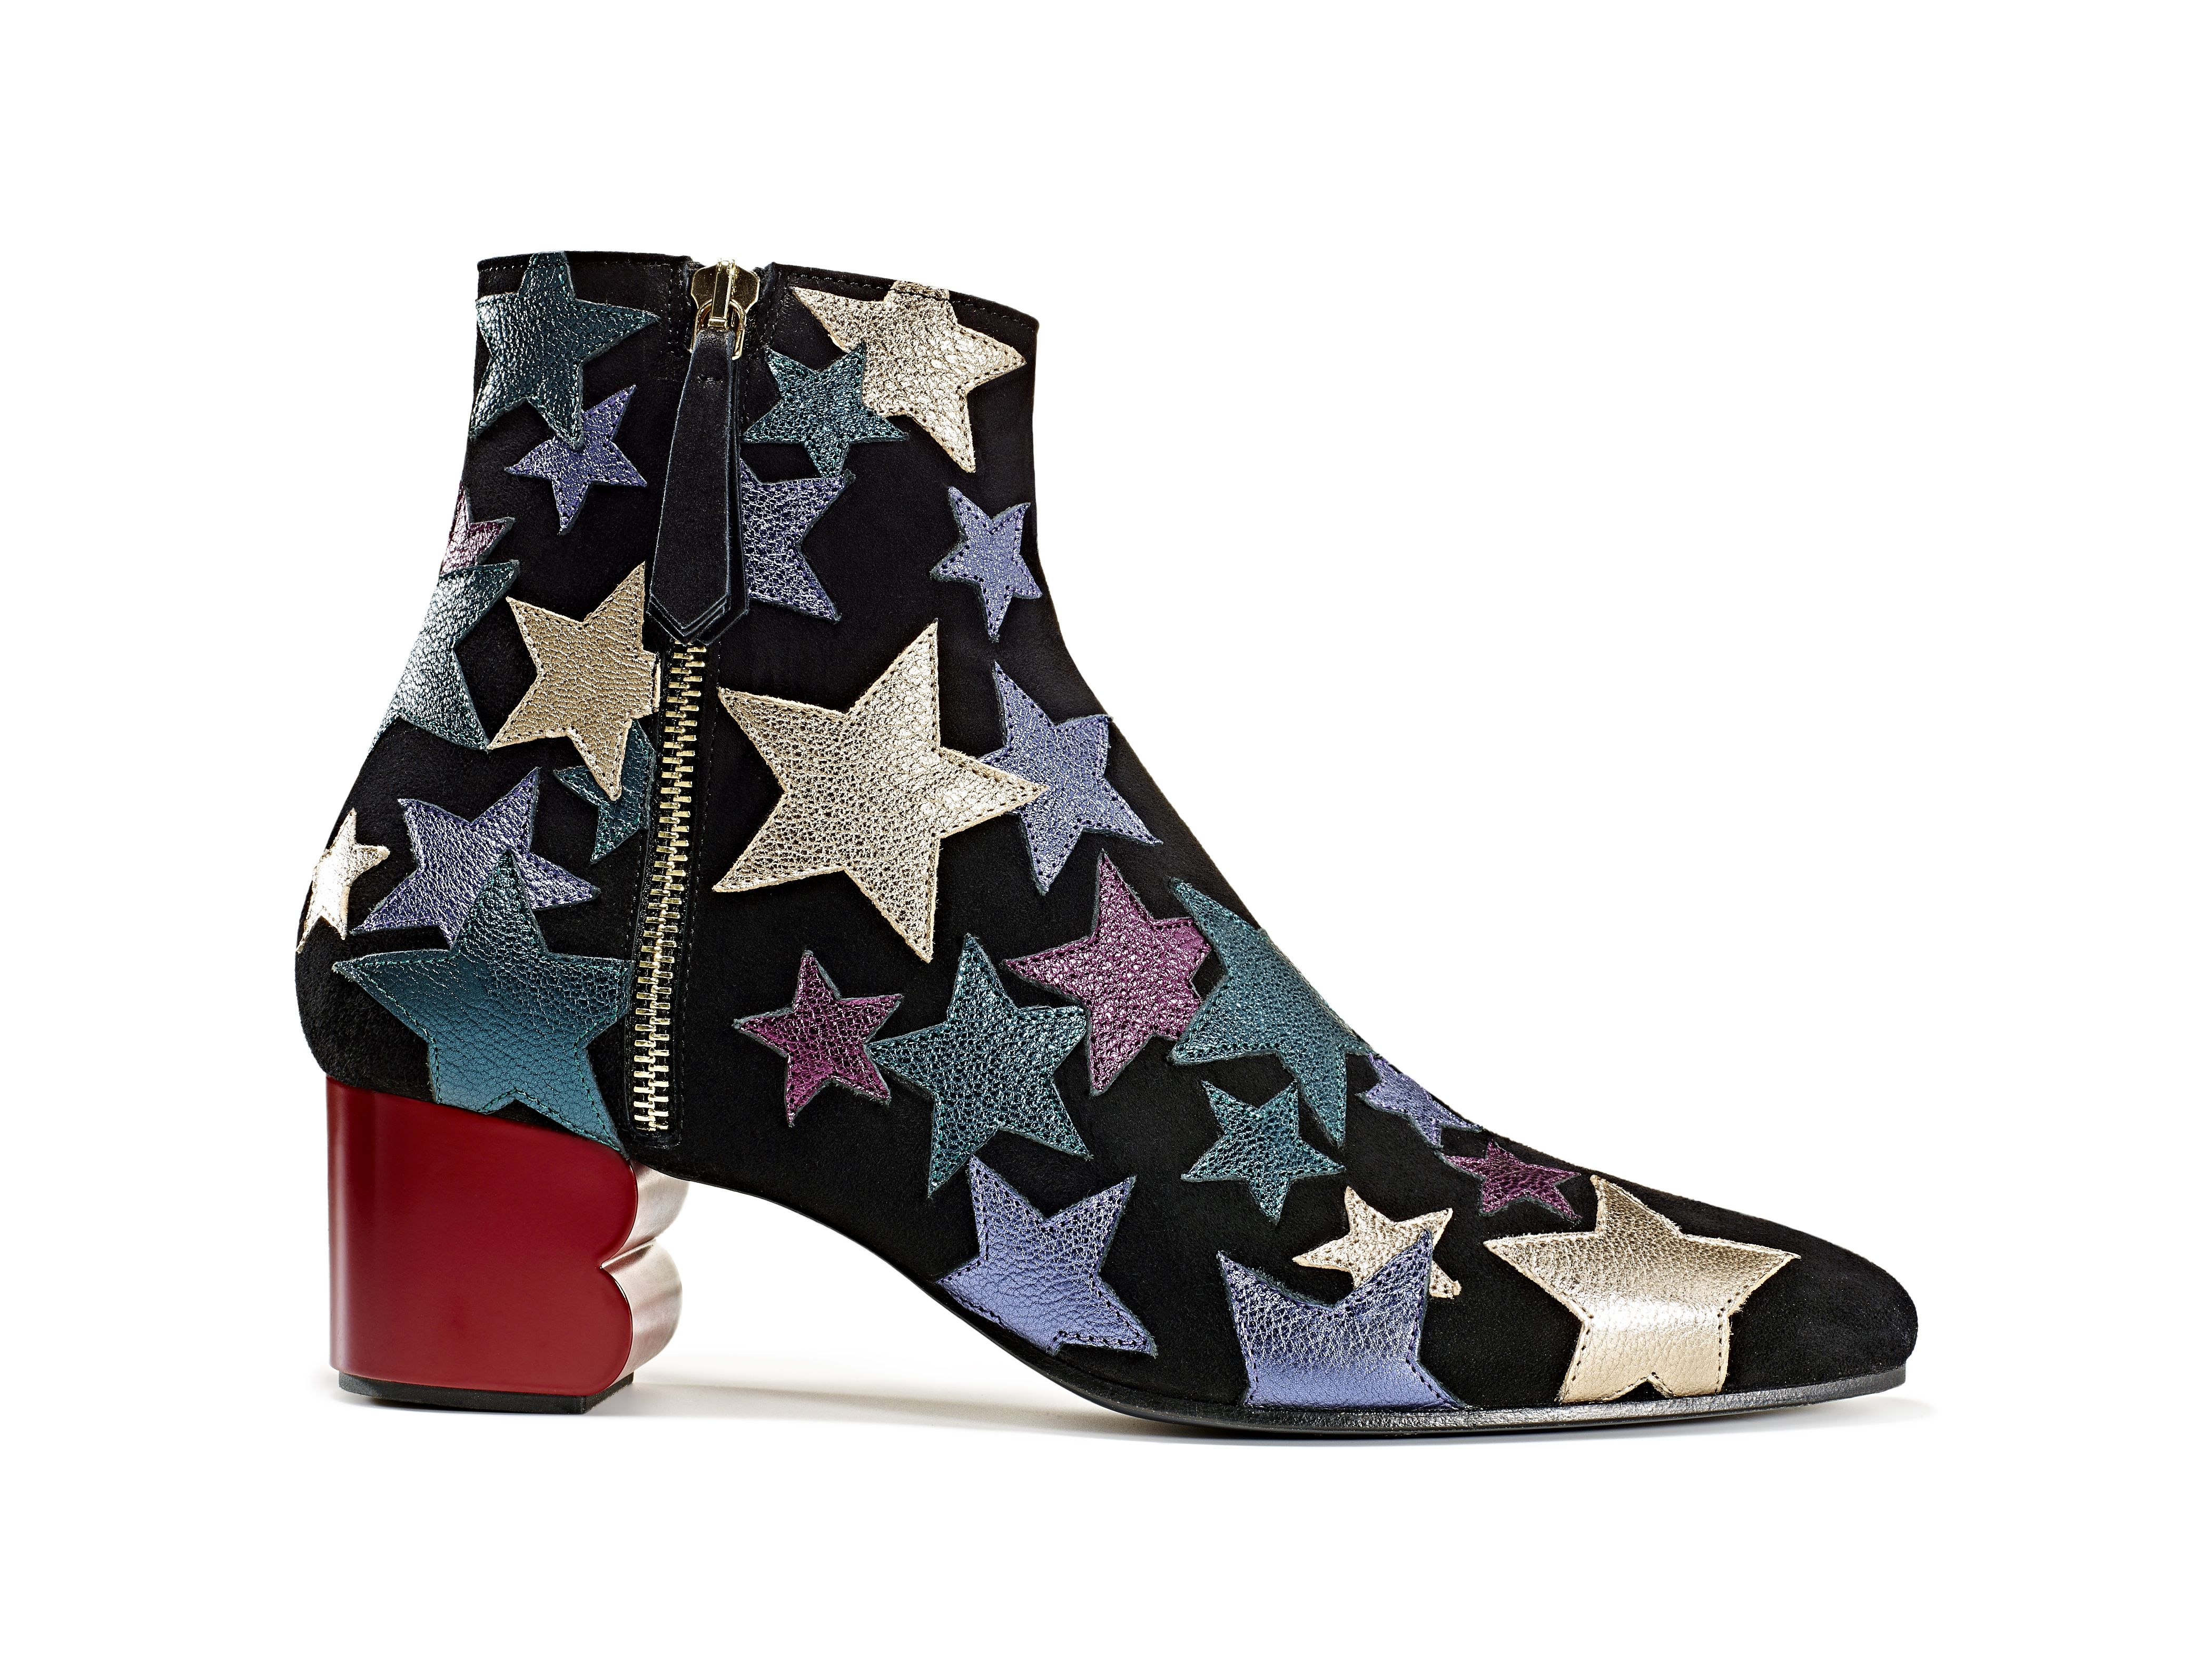 tommy hilfiger star boots - Google Search